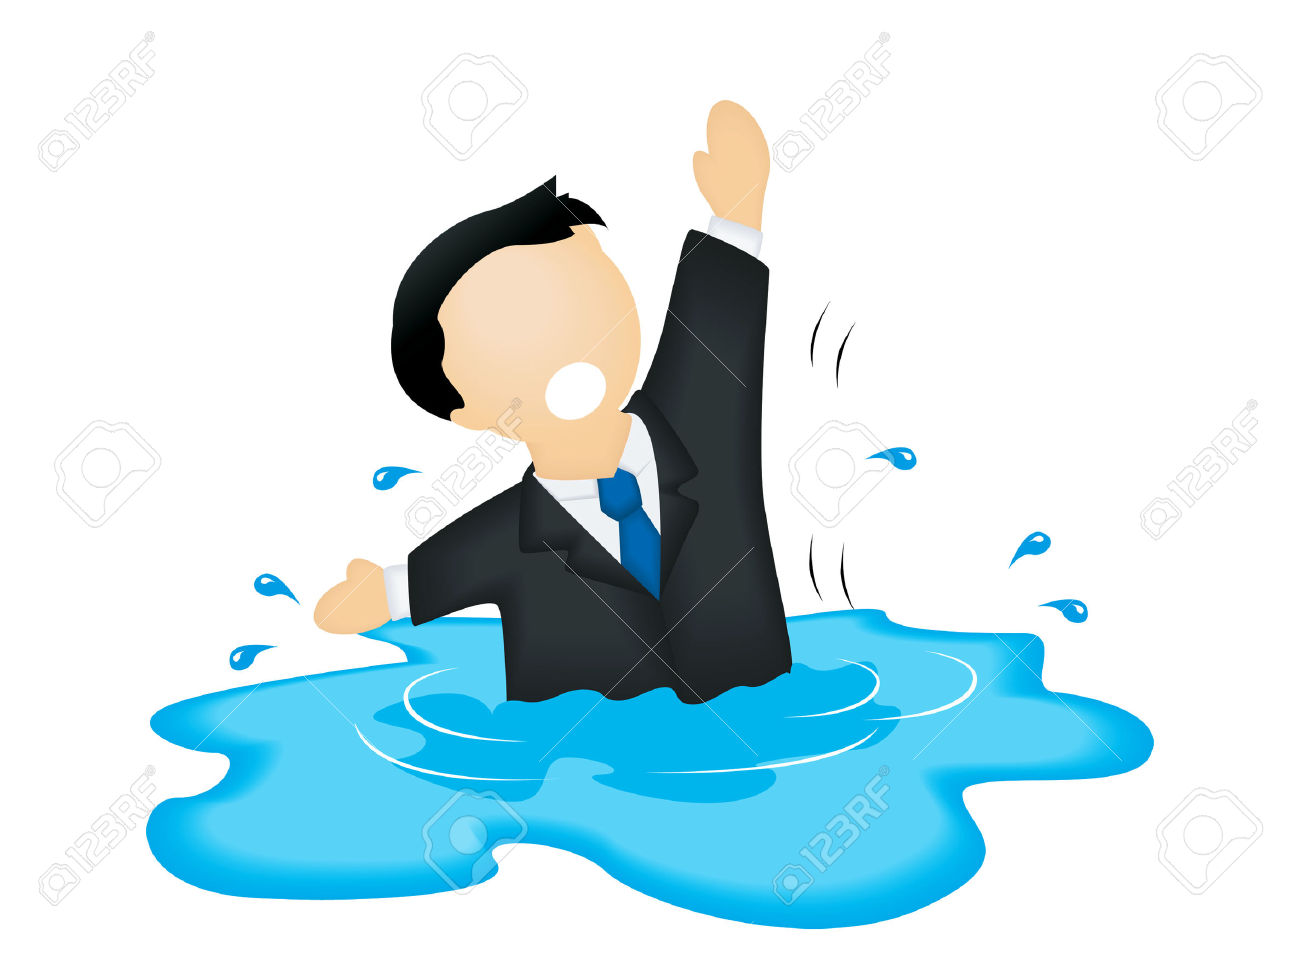 Free clipart drowning man.